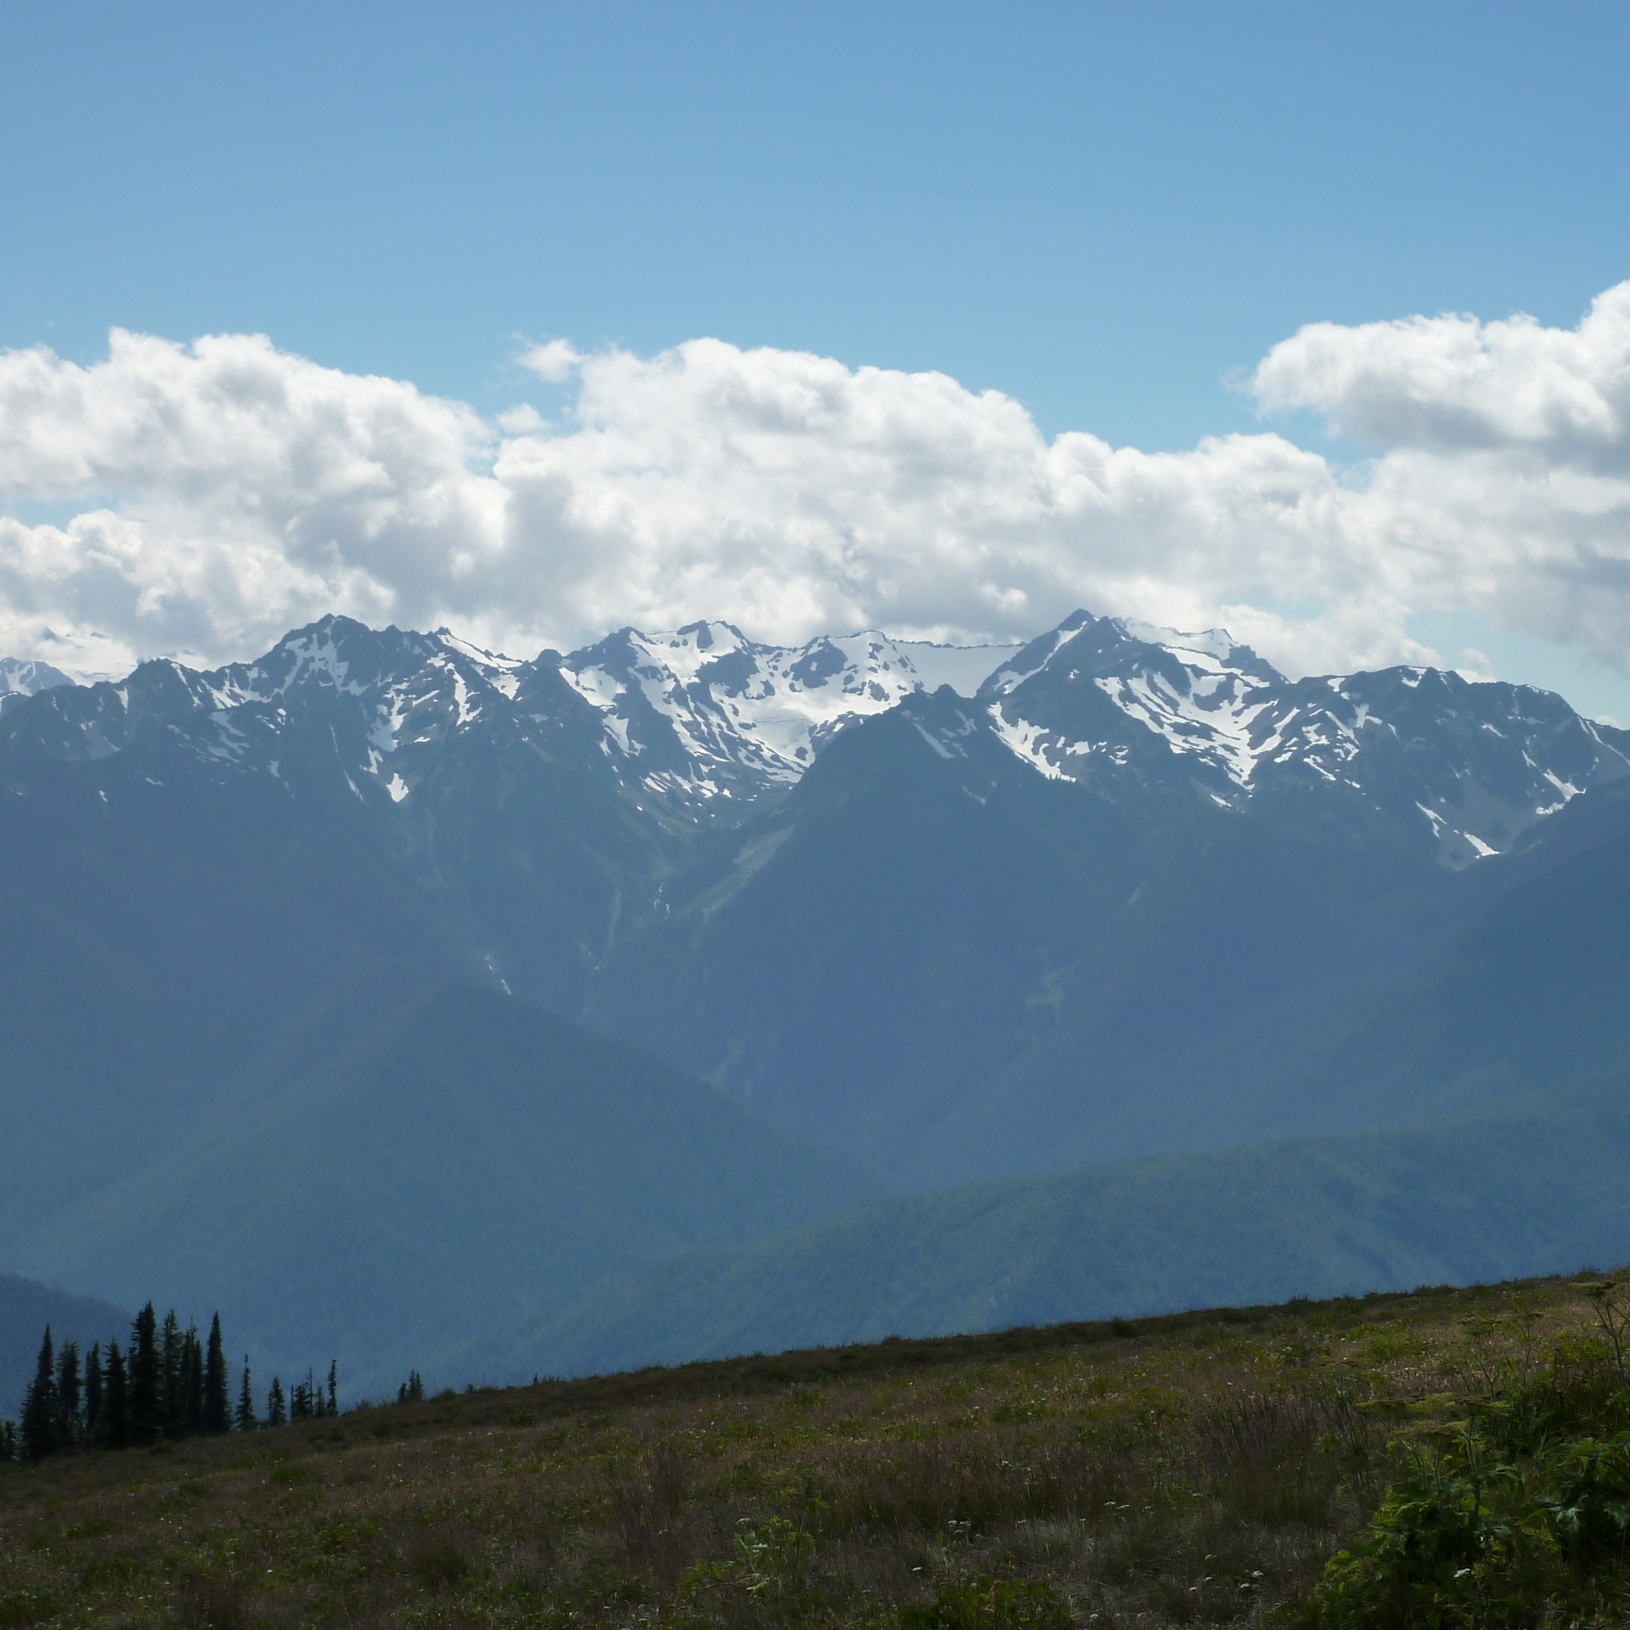 Hurricane Ridge subalpine firs Olympic mountain range with some clouds and blue sky above